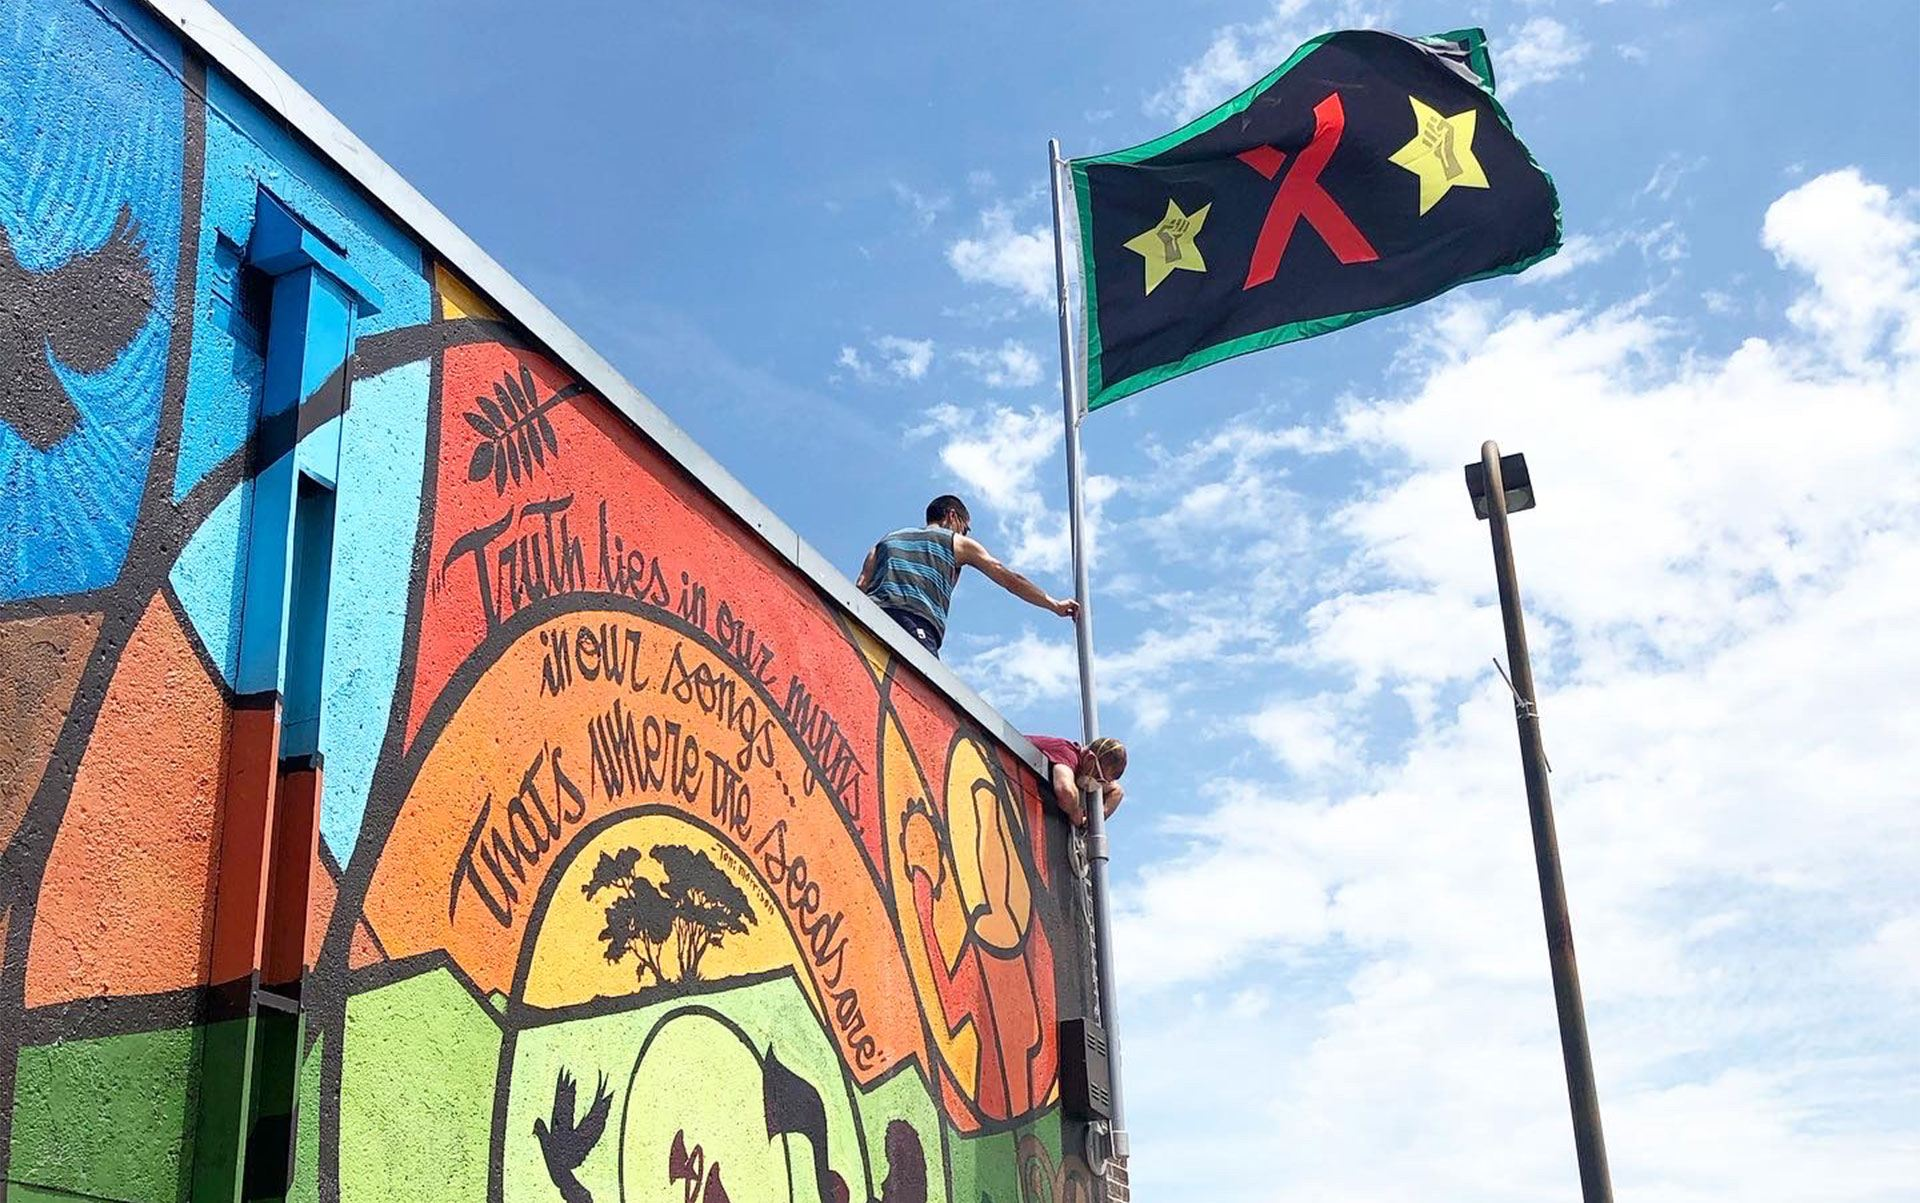 A wave with an X and two stars with raised fists in them waving against a blue sky and clouds atop a building with a colorful mural on the wall.